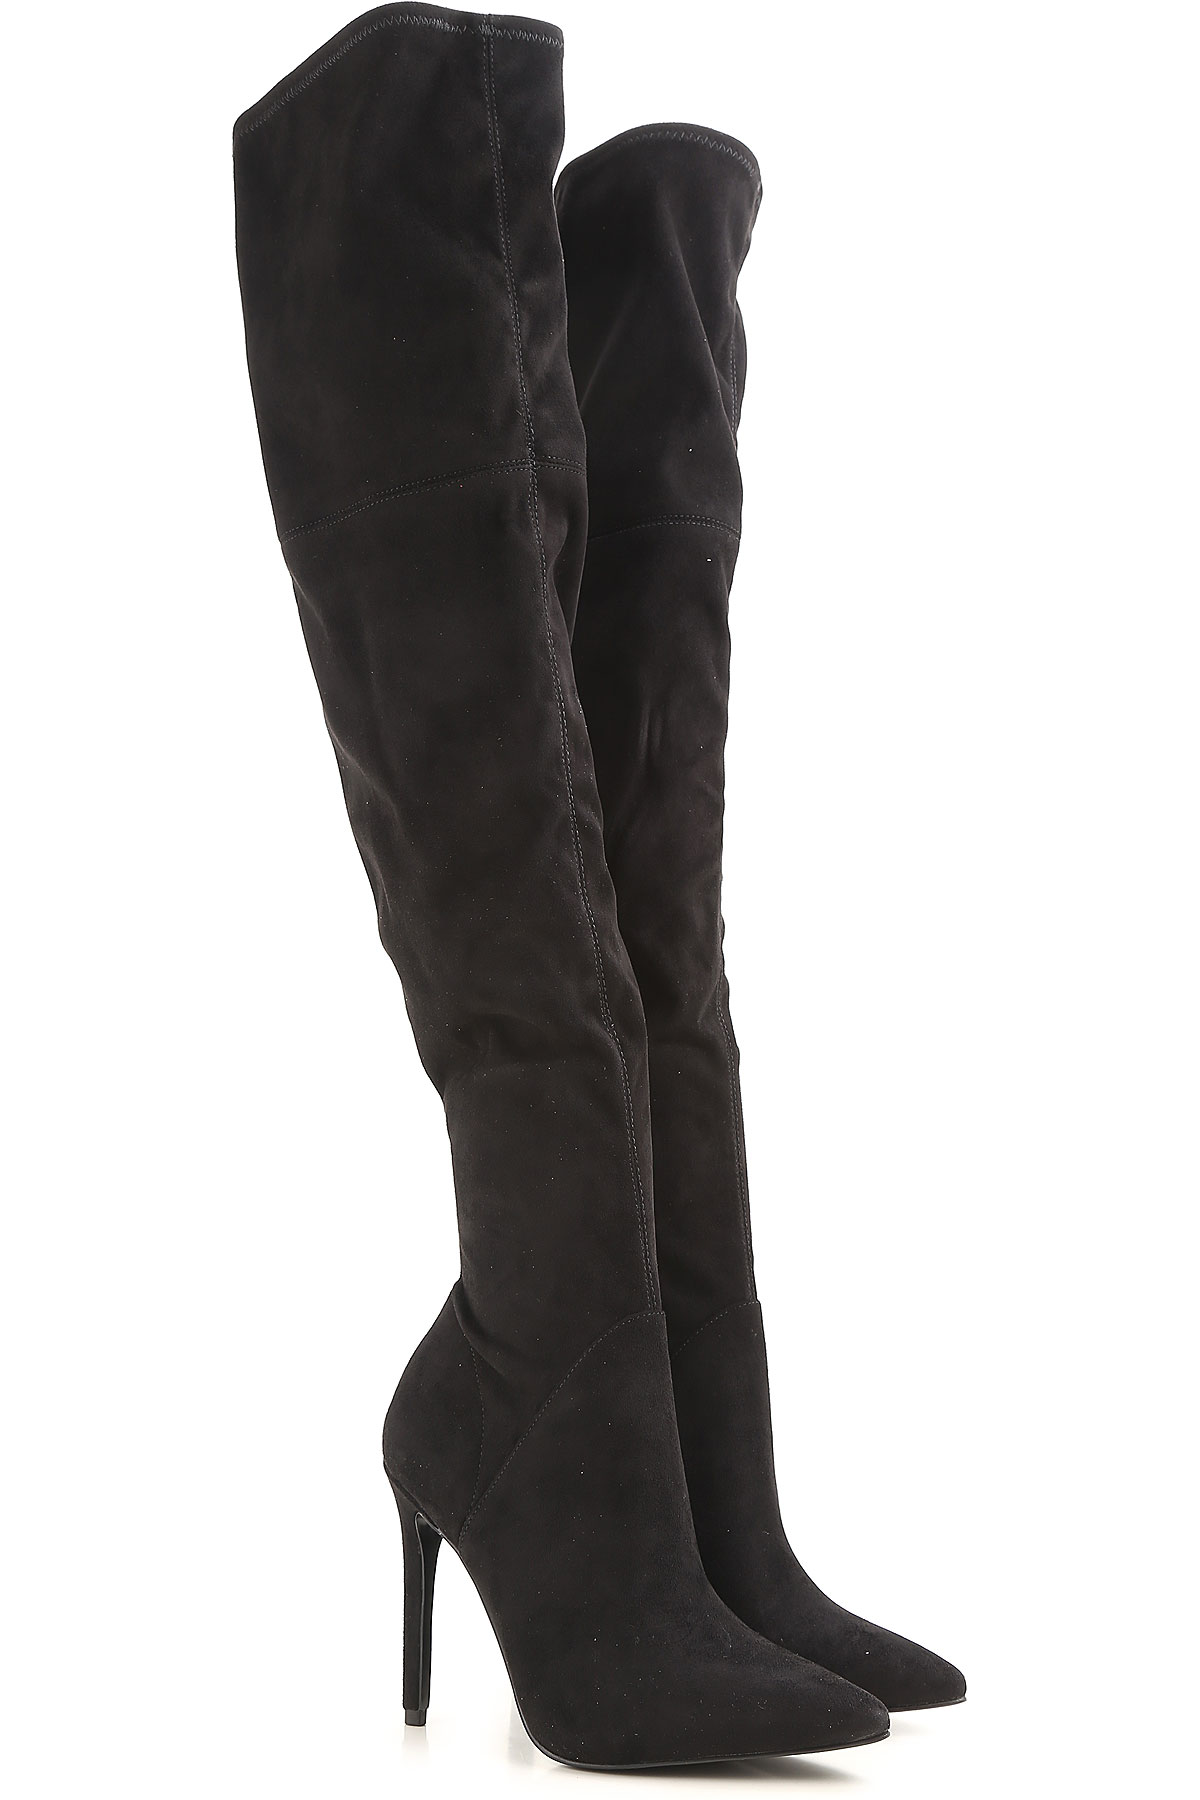 Image of Kendall Kylie Boots for Women, Booties On Sale in Outlet, Black, Suede leather, 2017, 5.5 6 9